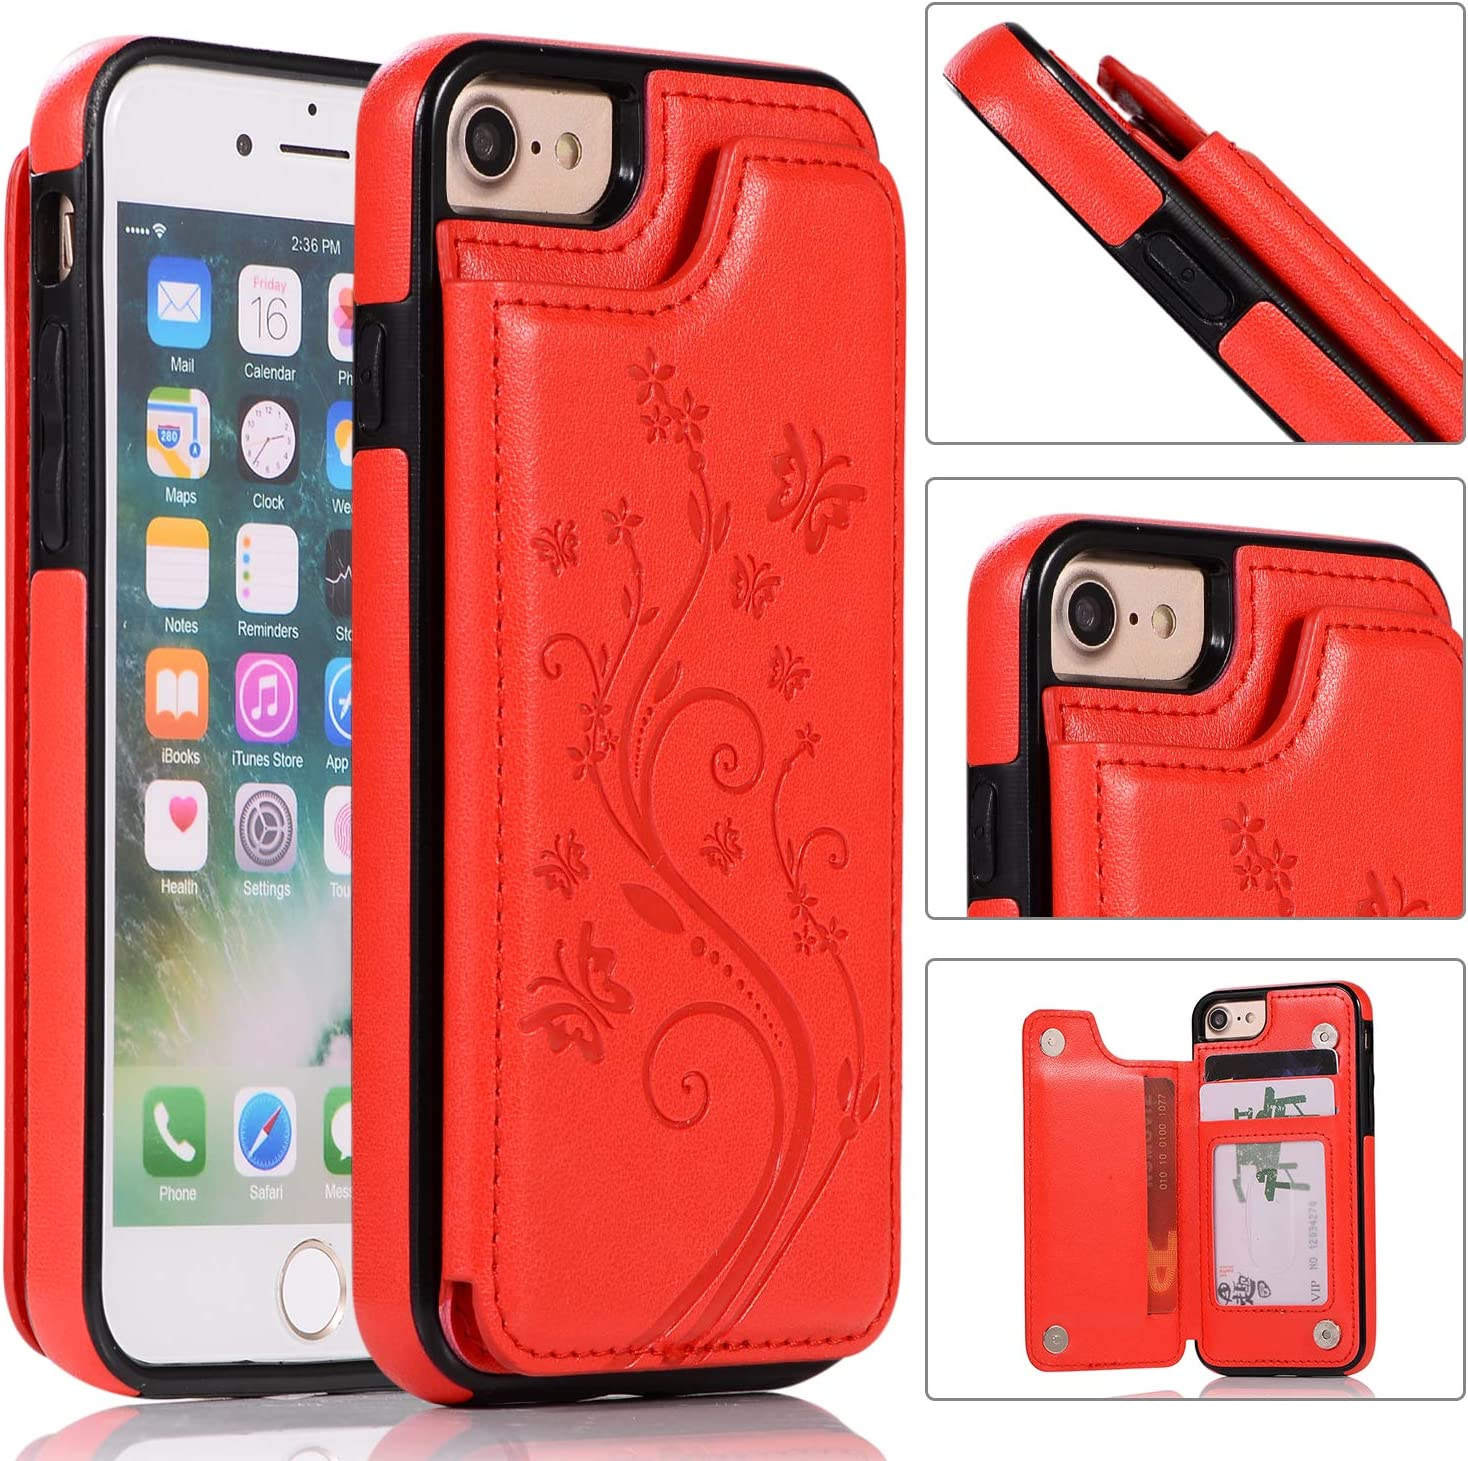 Back Wallet Case for iPhone 7 OFFicial store 8 Embosse Max 85% OFF with QFFUN Stand Elegant